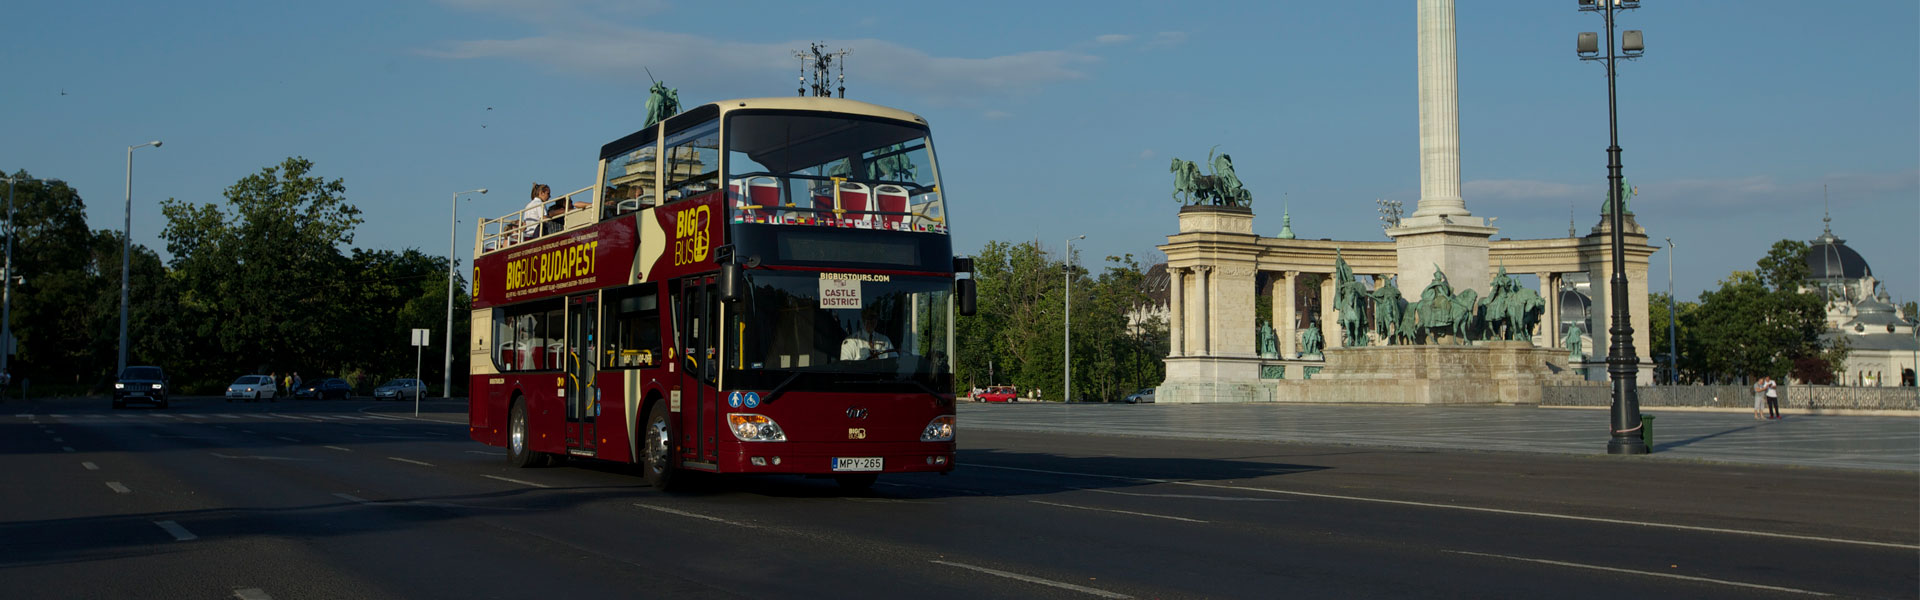 Big Bus Tours Passing Heroes' Square Budapest